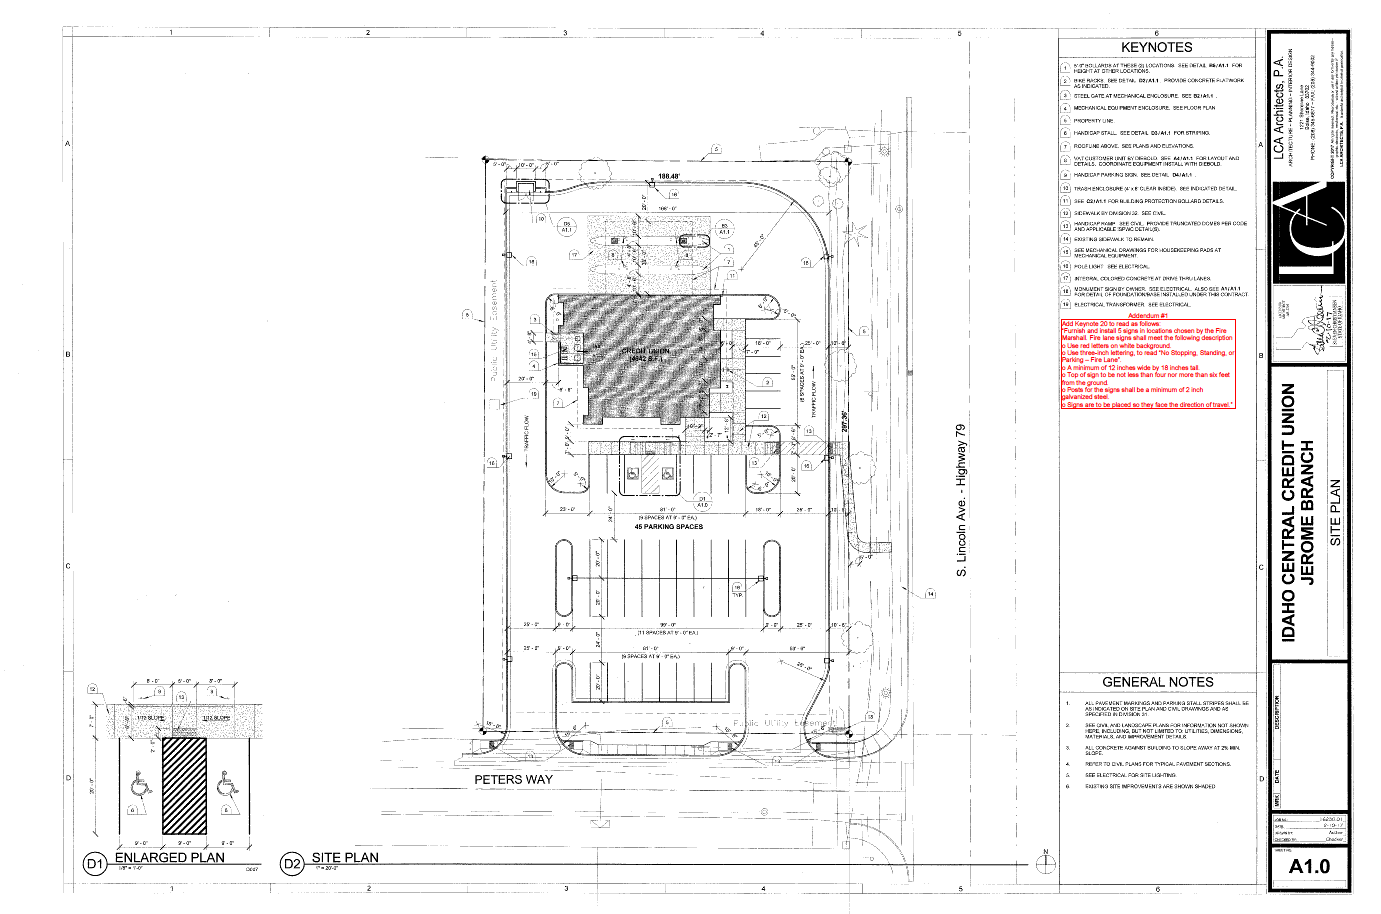 Figure 1-0 Idaho Central Credit Union - Jerome Branch - Site Plan